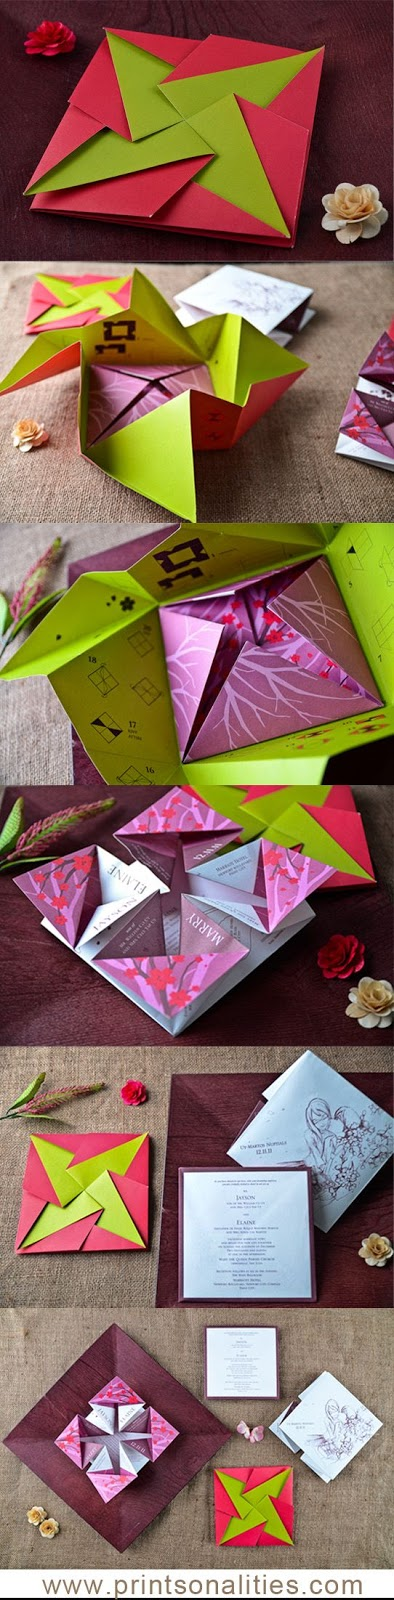 origami's wedding invite